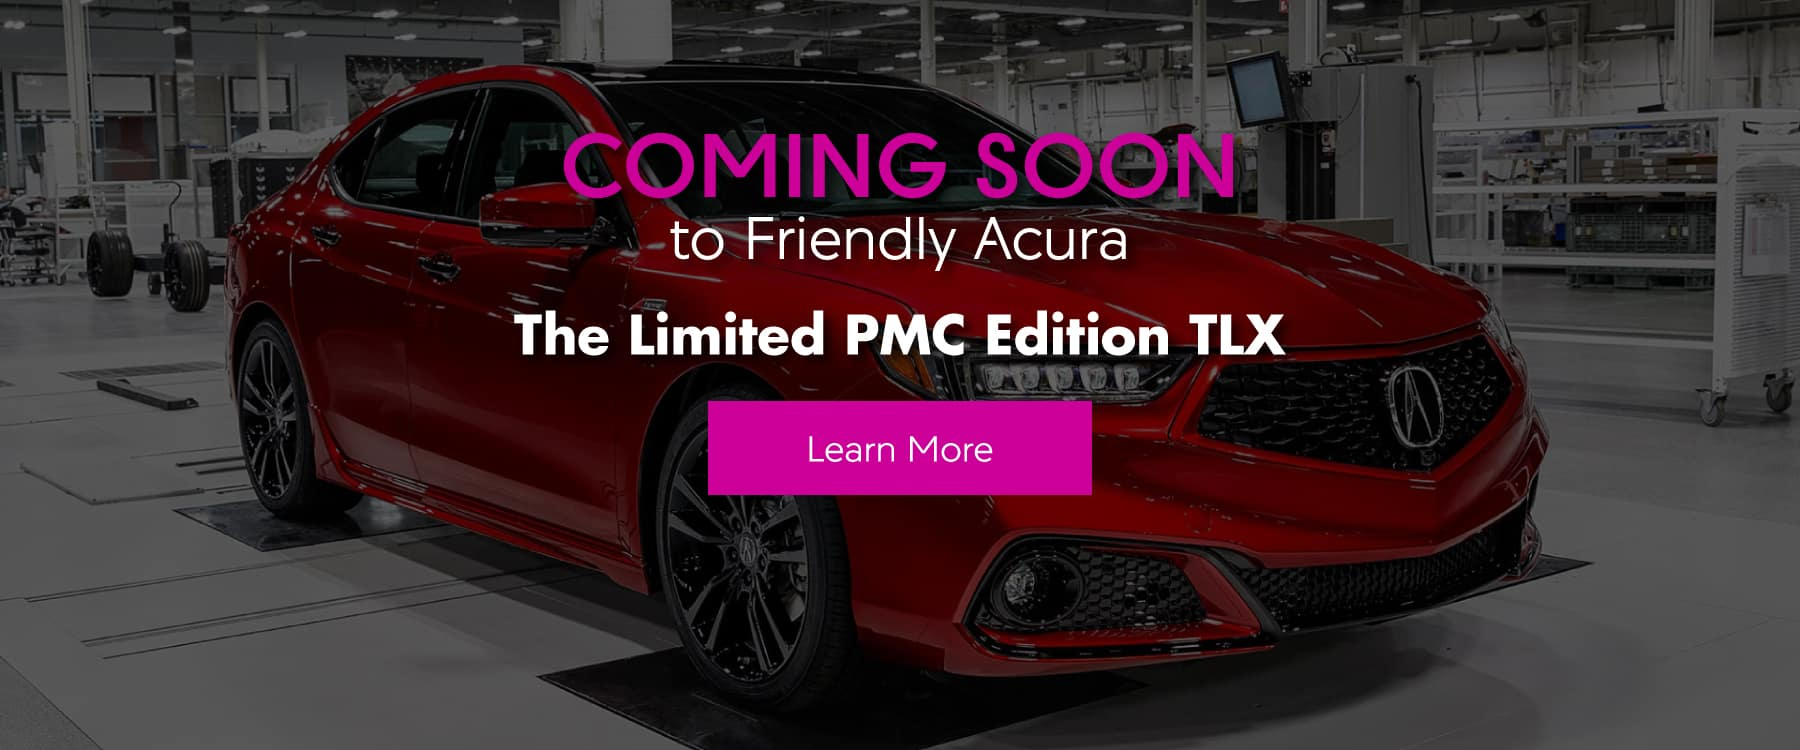 Acura TLX PMC Edition Coming Soon | Friendly Acura of Middletown